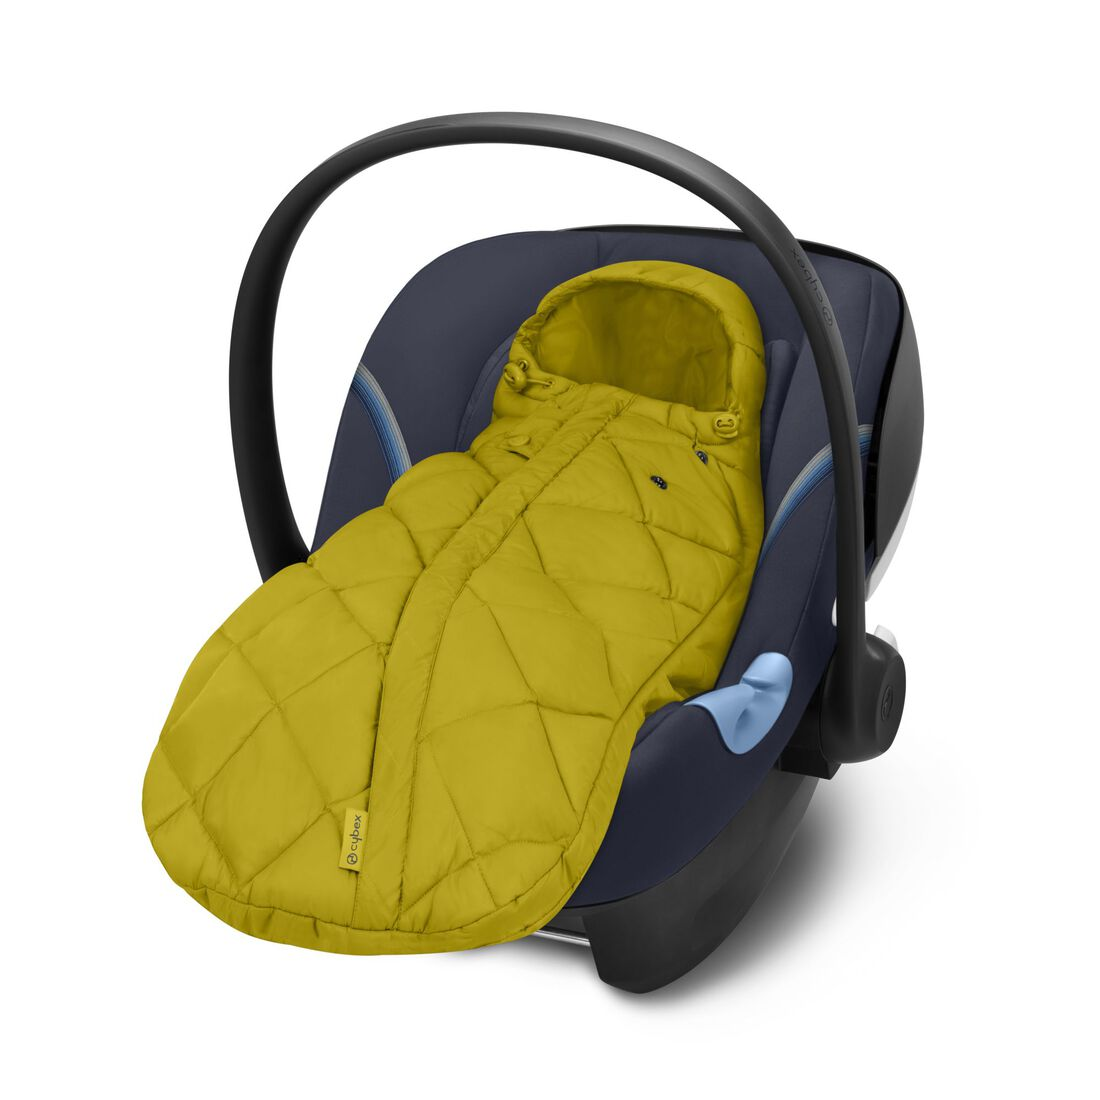 CYBEX Snogga Mini - Mustard Yellow in Mustard Yellow large Bild 2